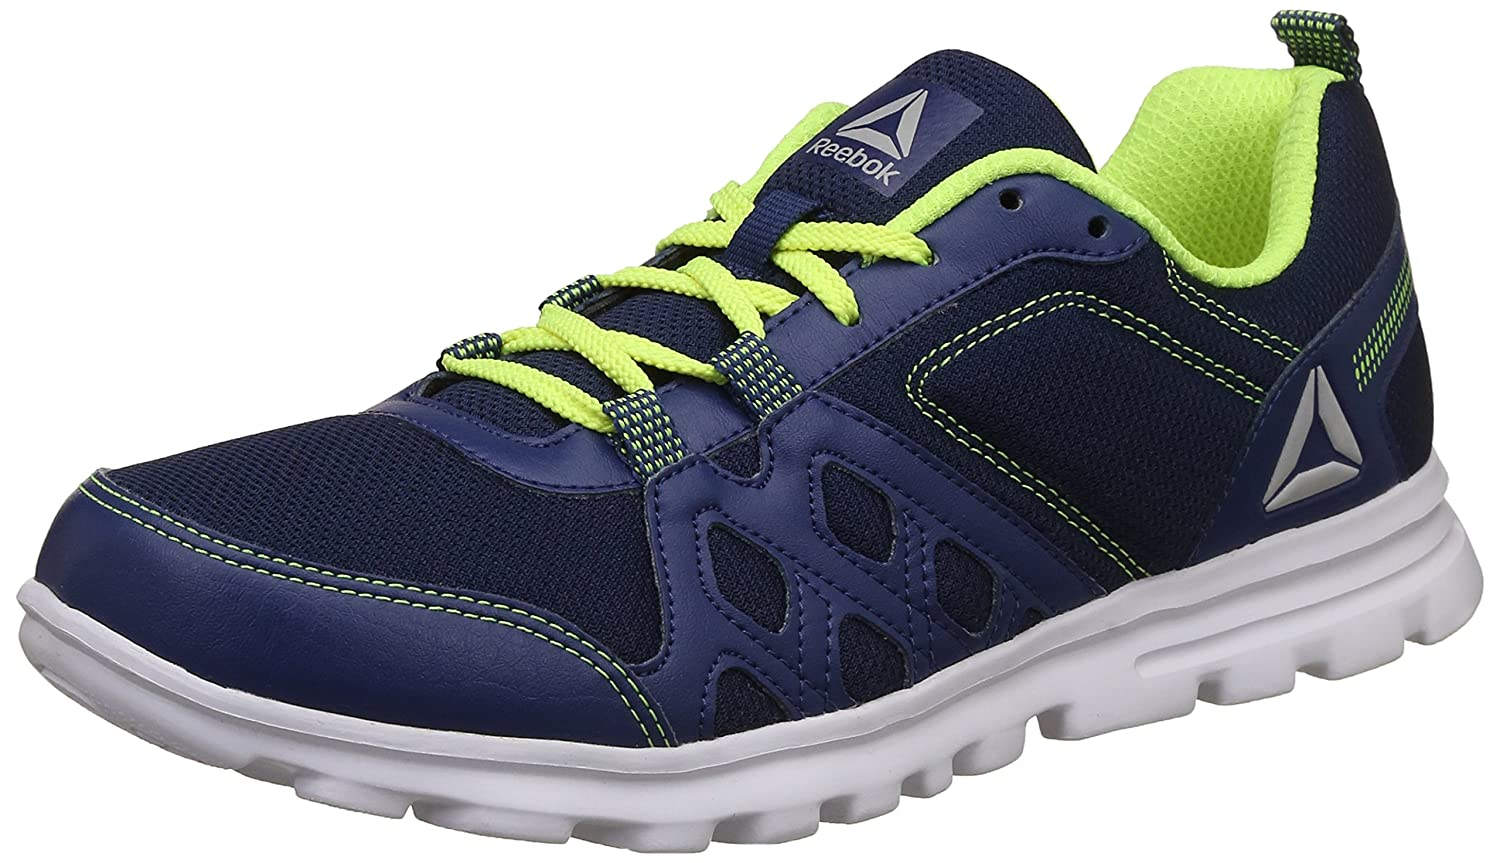 c00ebe5cf68 Reebok Men s Run Fusion Xtreme Multicolor Running Shoes-7 UK India (40.5  EU)(8 US) (CN6026)  Buy Online at Low Prices in India - Amazon.in